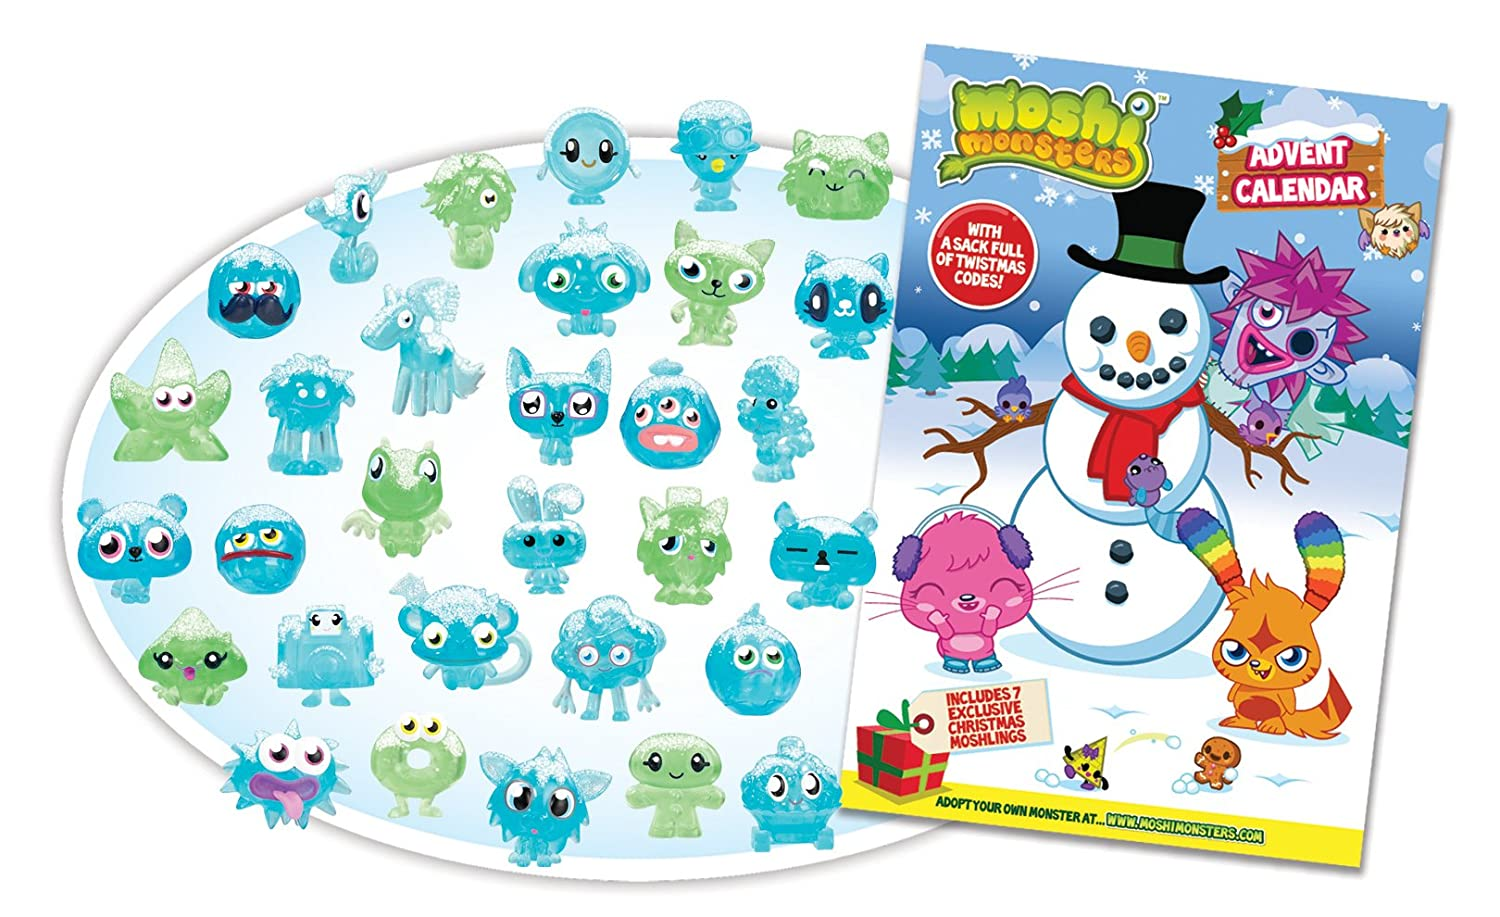 Moshi Moshi Monsters Calendario de Adviento Vivid Imaginations 78110